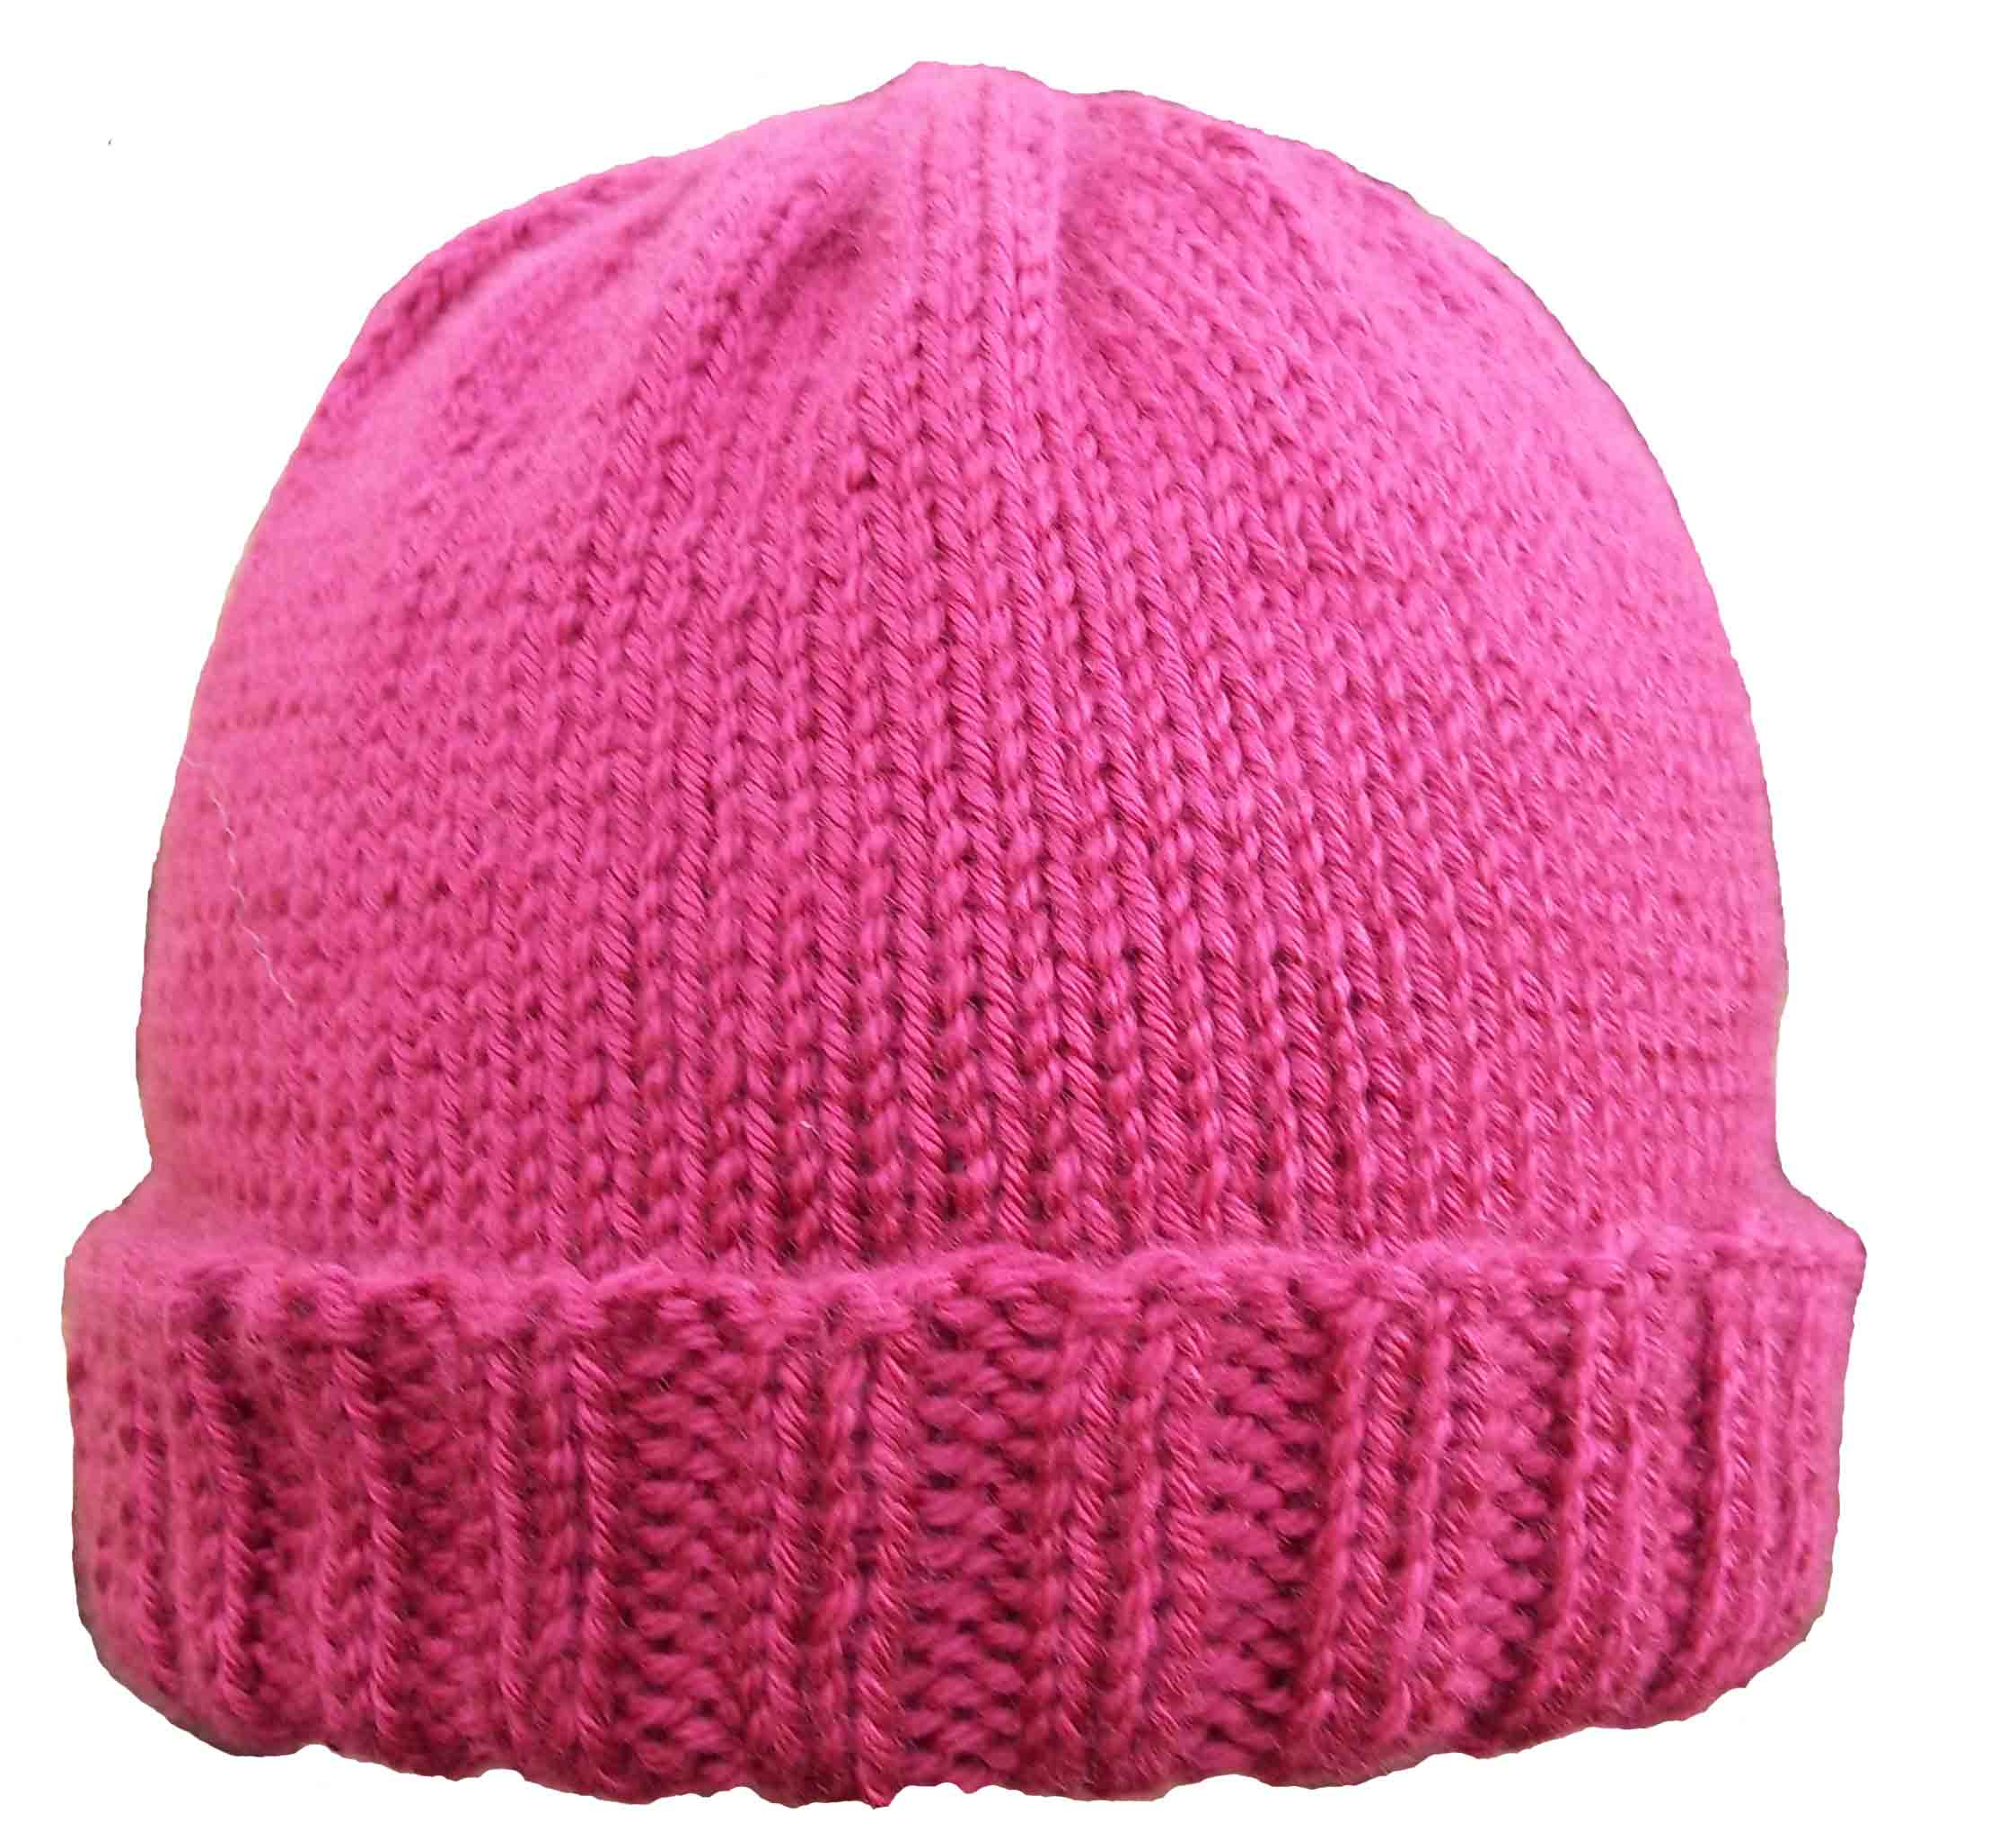 Luxury Simple Knitting Patterns for Hats Crochet and Knit Rib Knit Hat Of Gorgeous 47 Models Rib Knit Hat